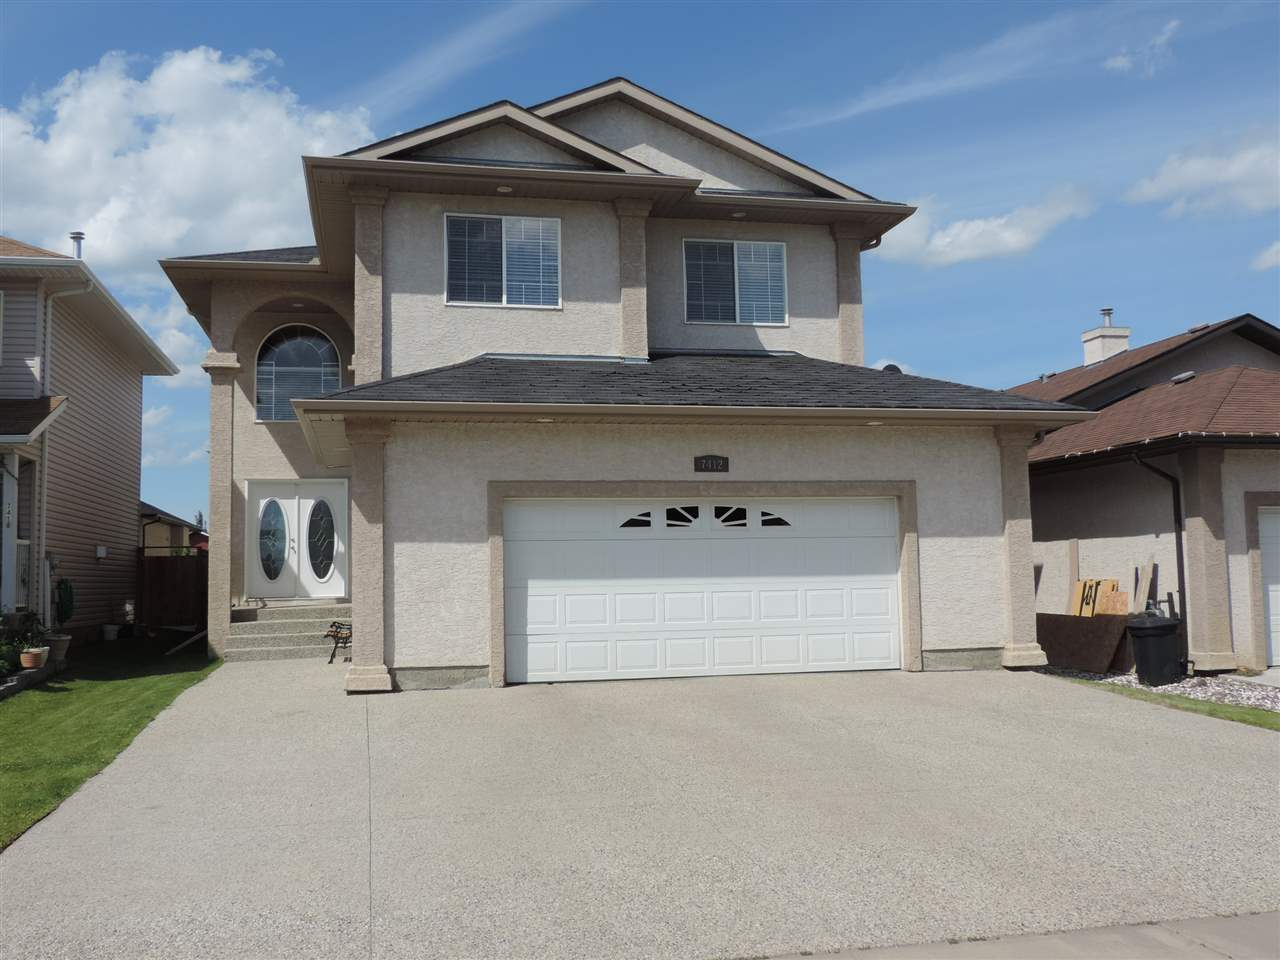 Main Photo: 7412 168 Avenue in Edmonton: Zone 28 House for sale : MLS(r) # E4070750